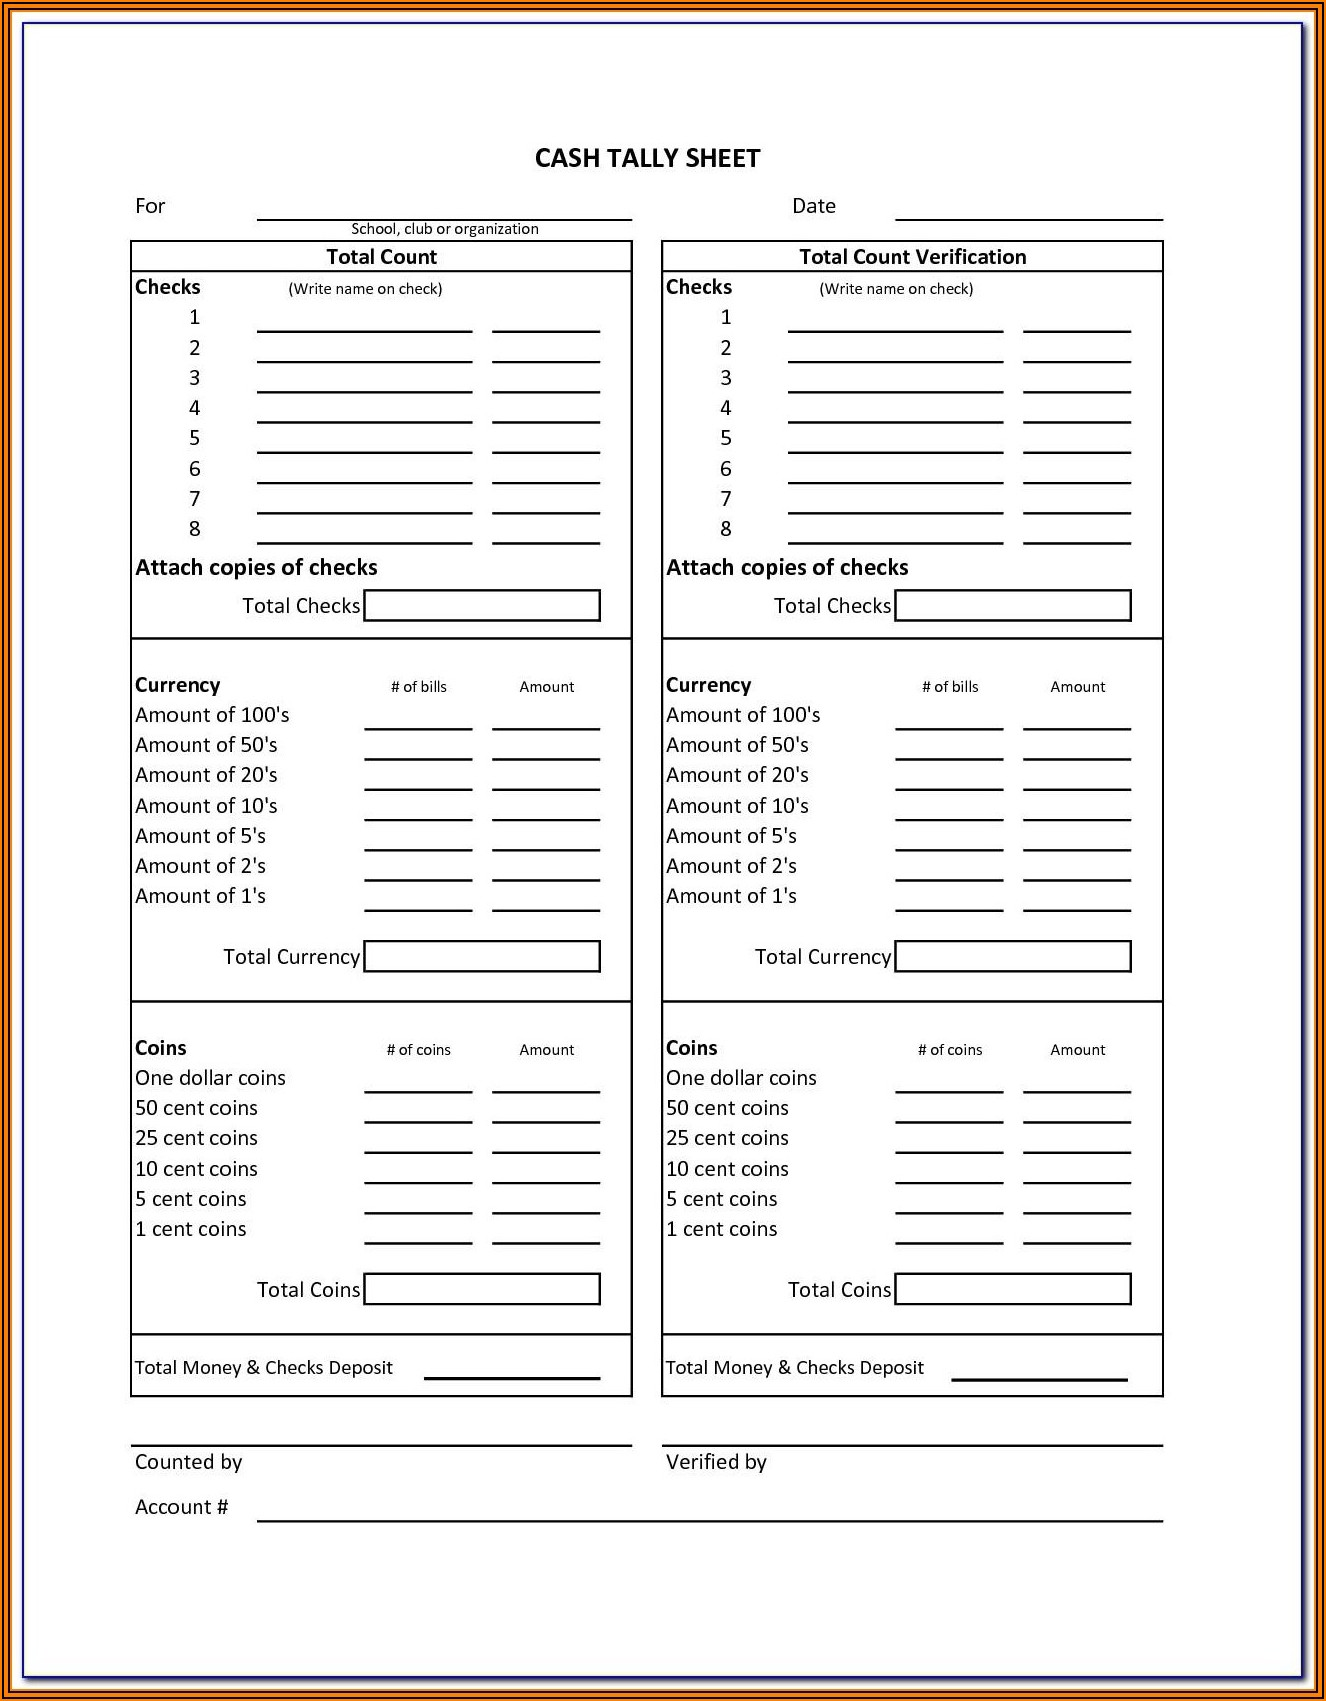 Daily Cash Drawer Reconciliation Form